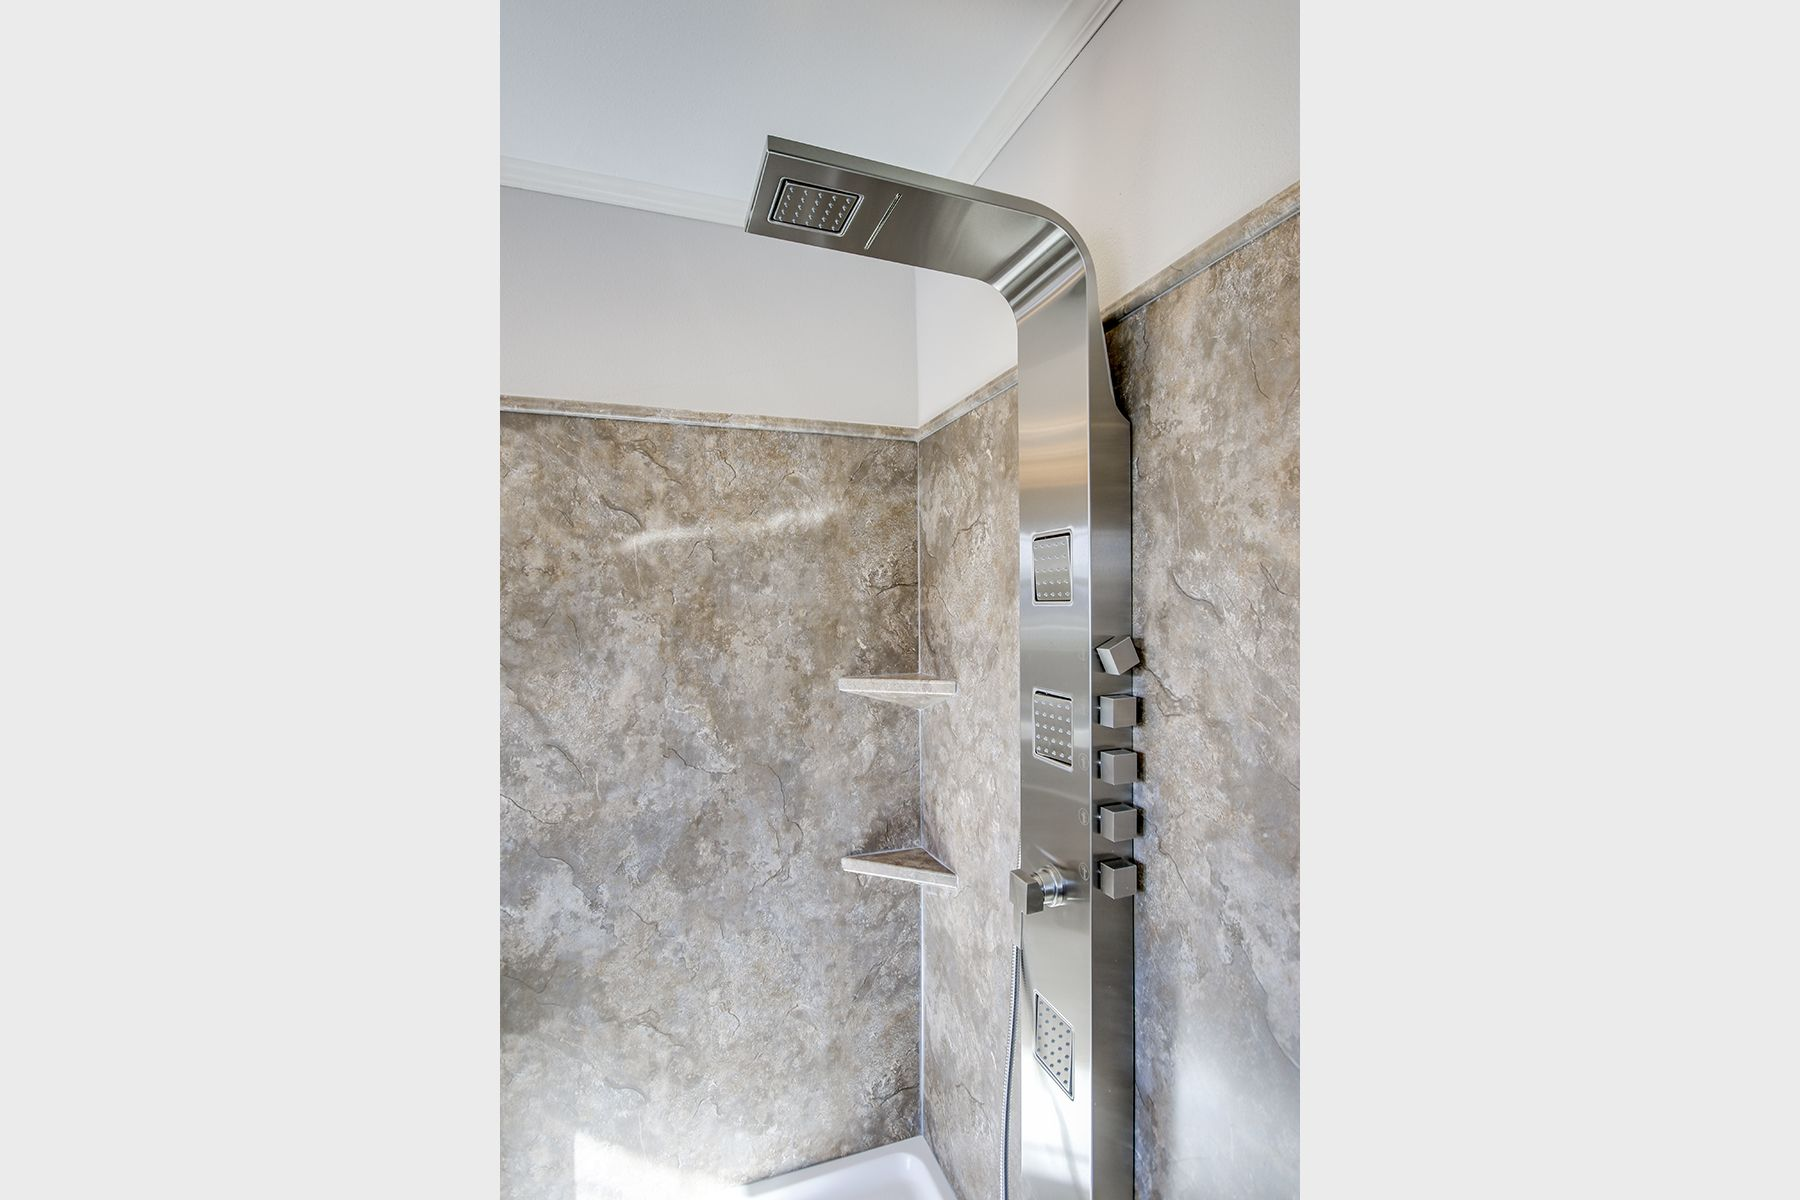 Shower Tower System With Handheld Sprayer Frameless Glass